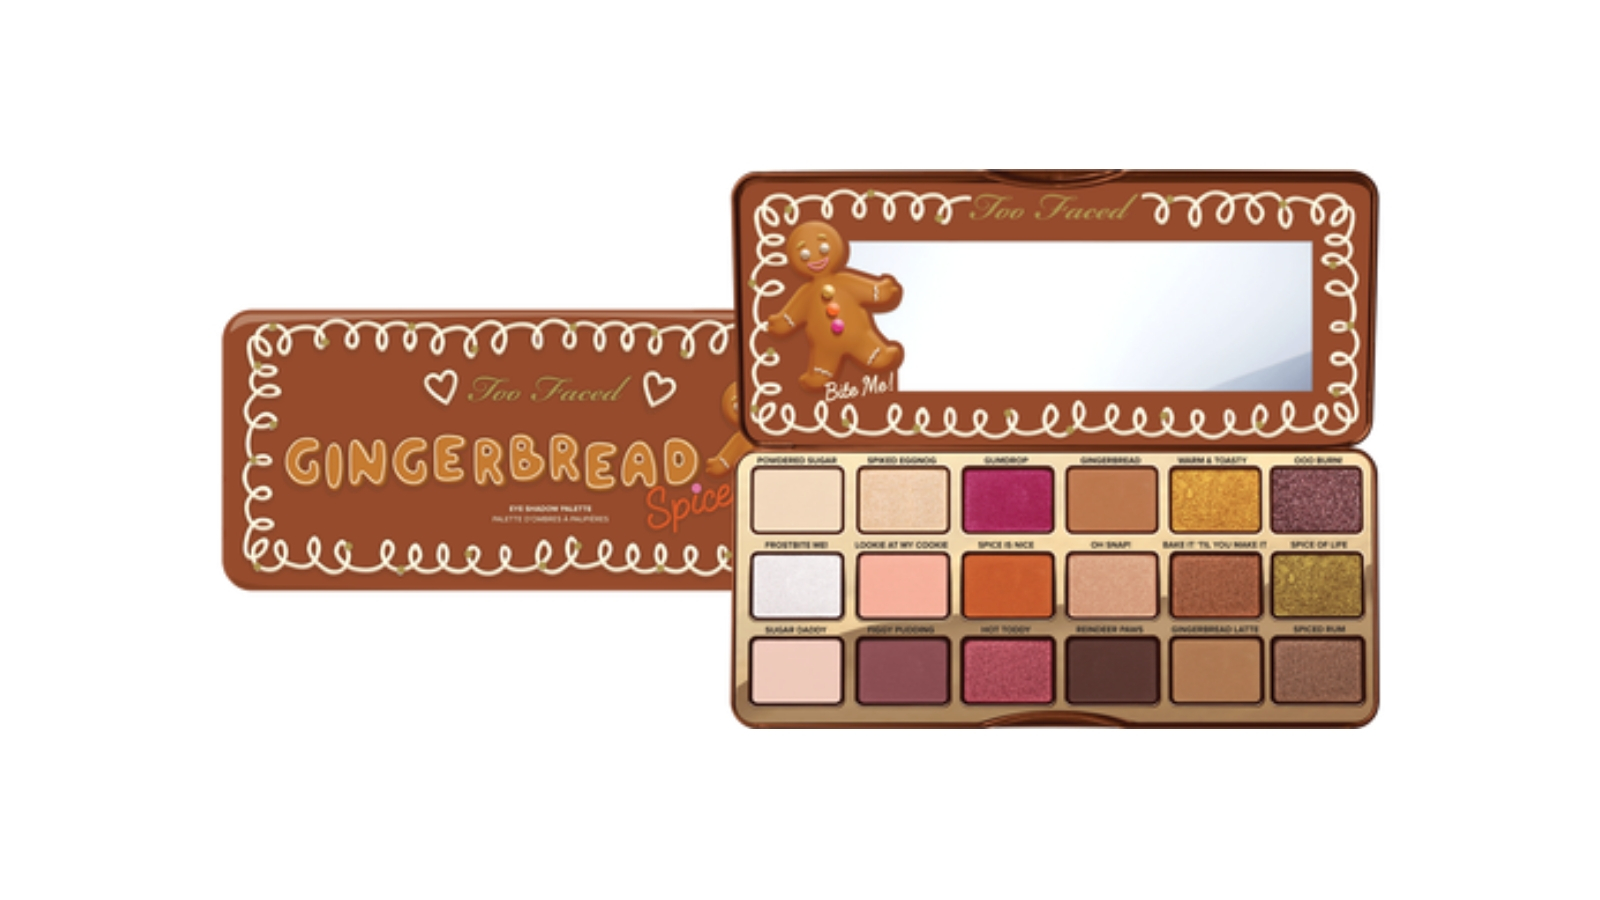 Too Faced Gingerbread Spice Palette $71